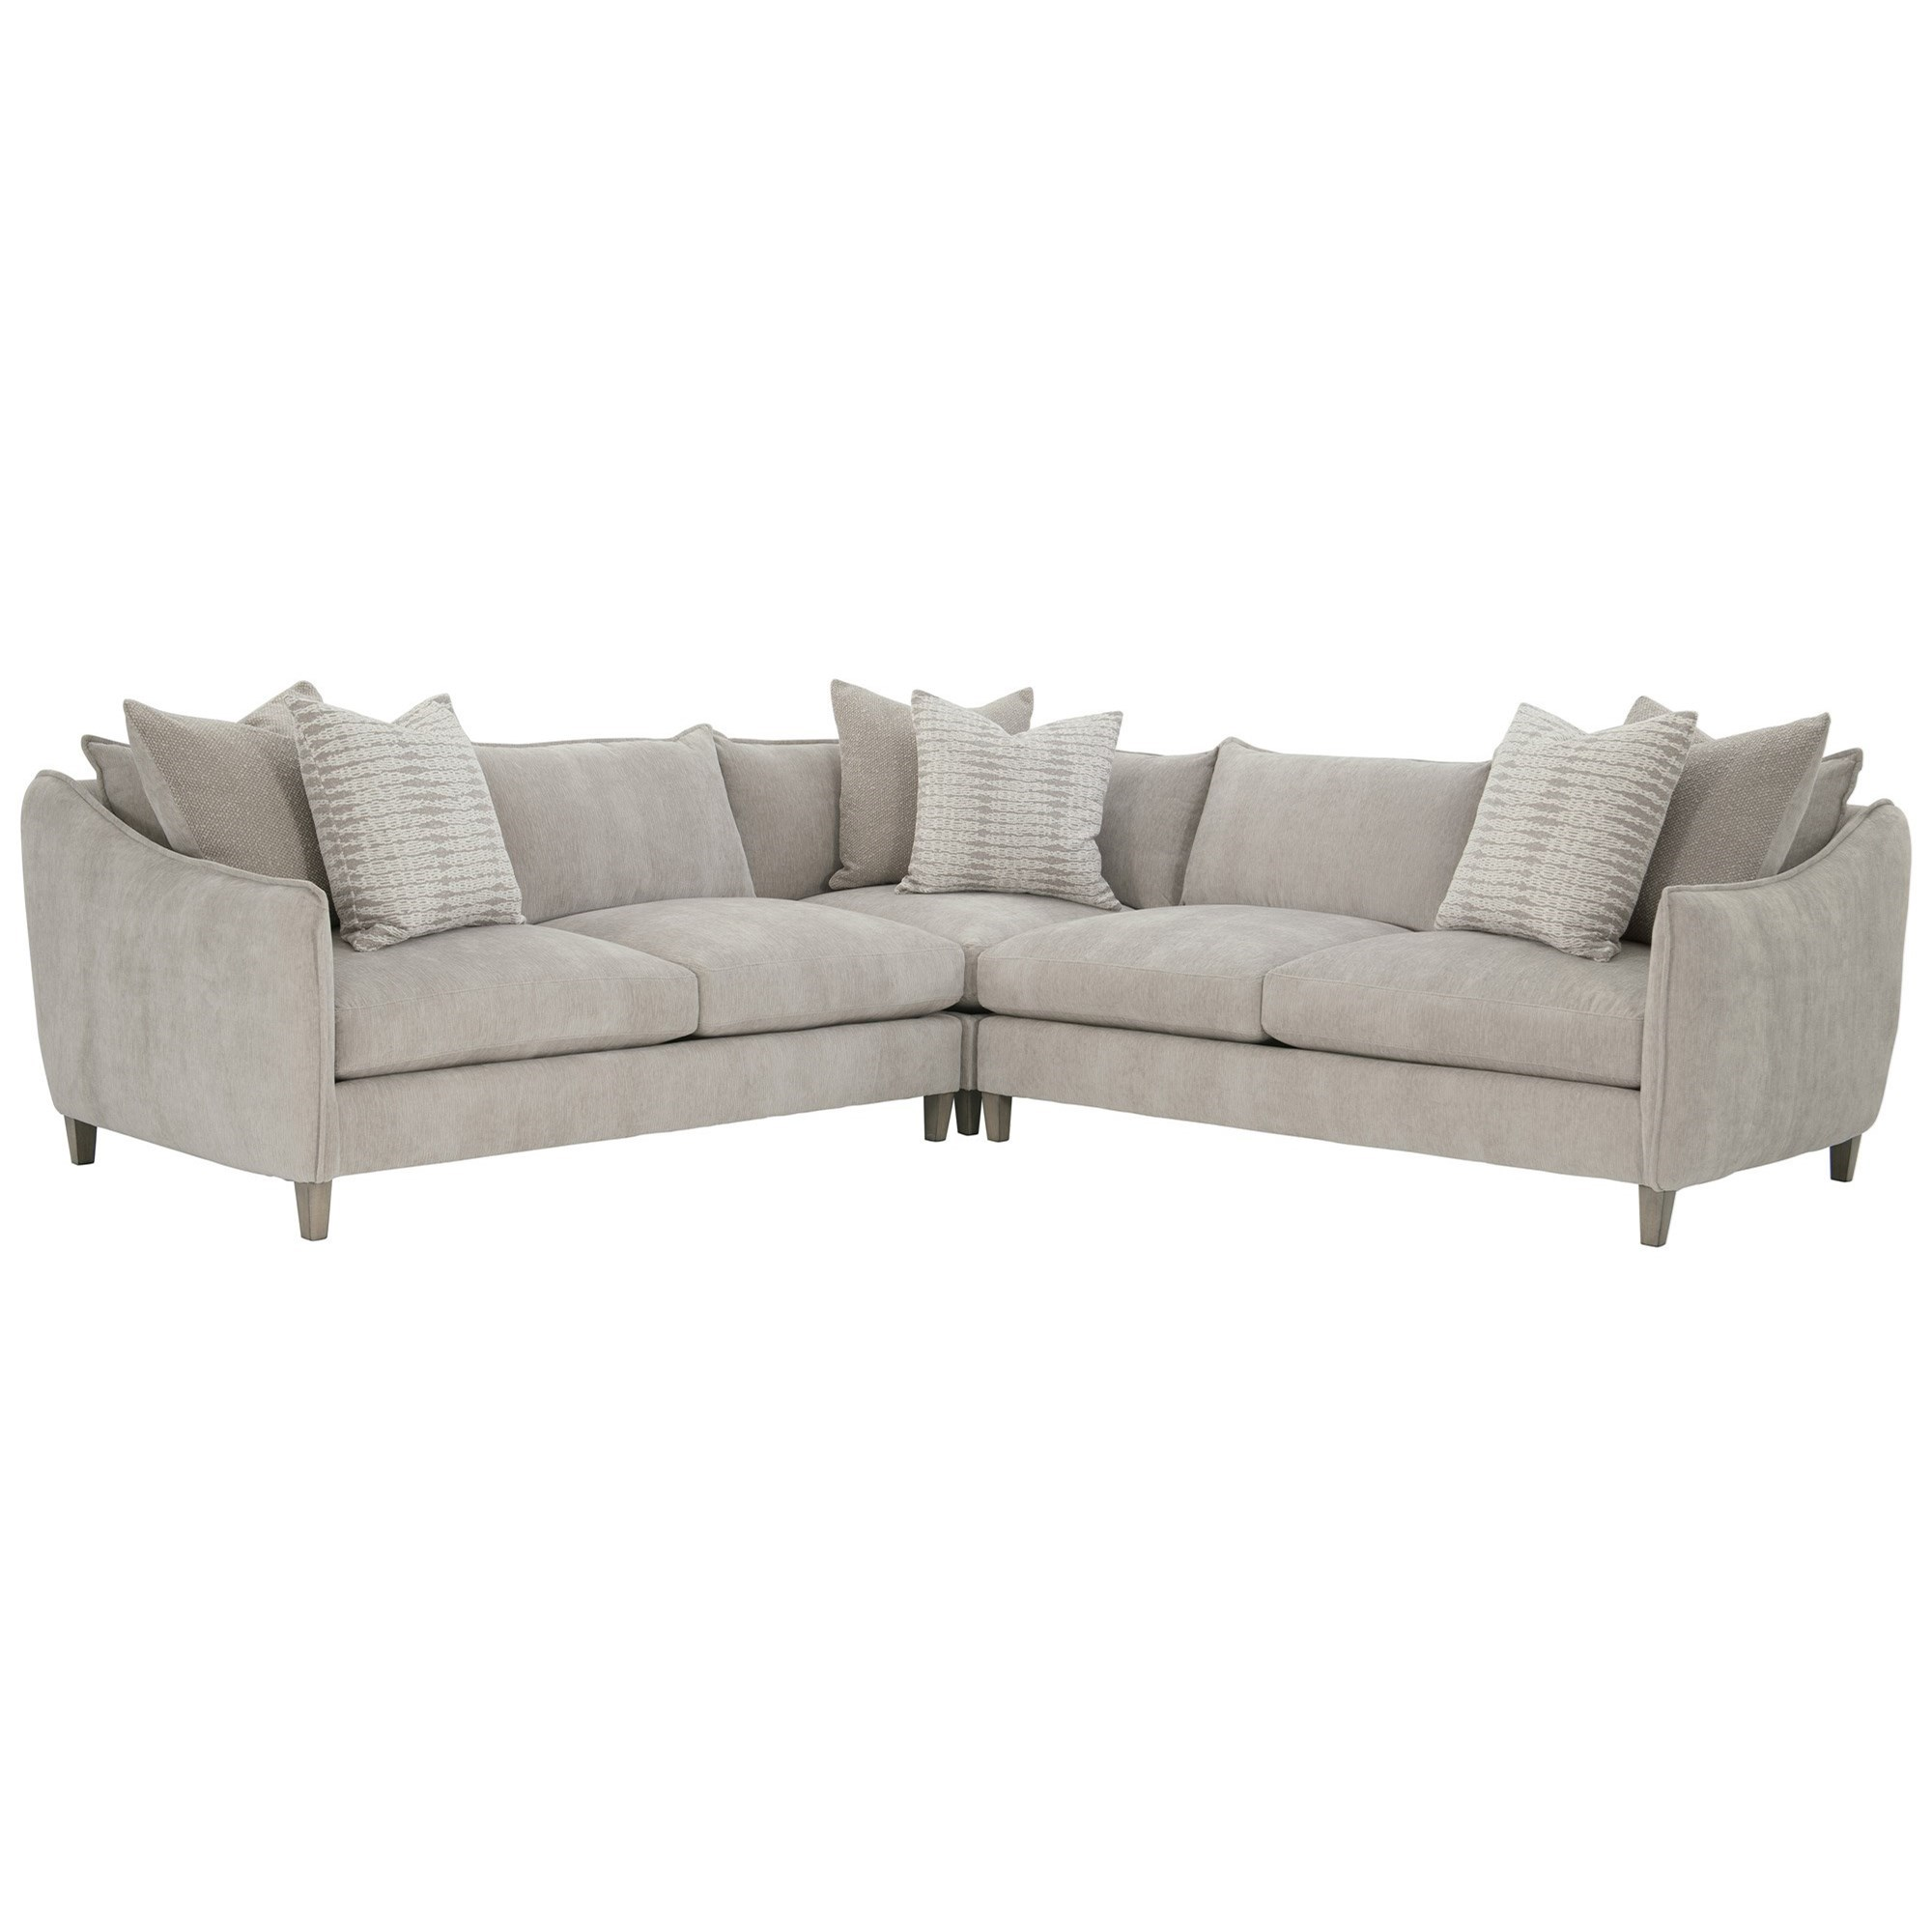 Joli 3-Piece Sectional by Bernhardt at Fisher Home Furnishings